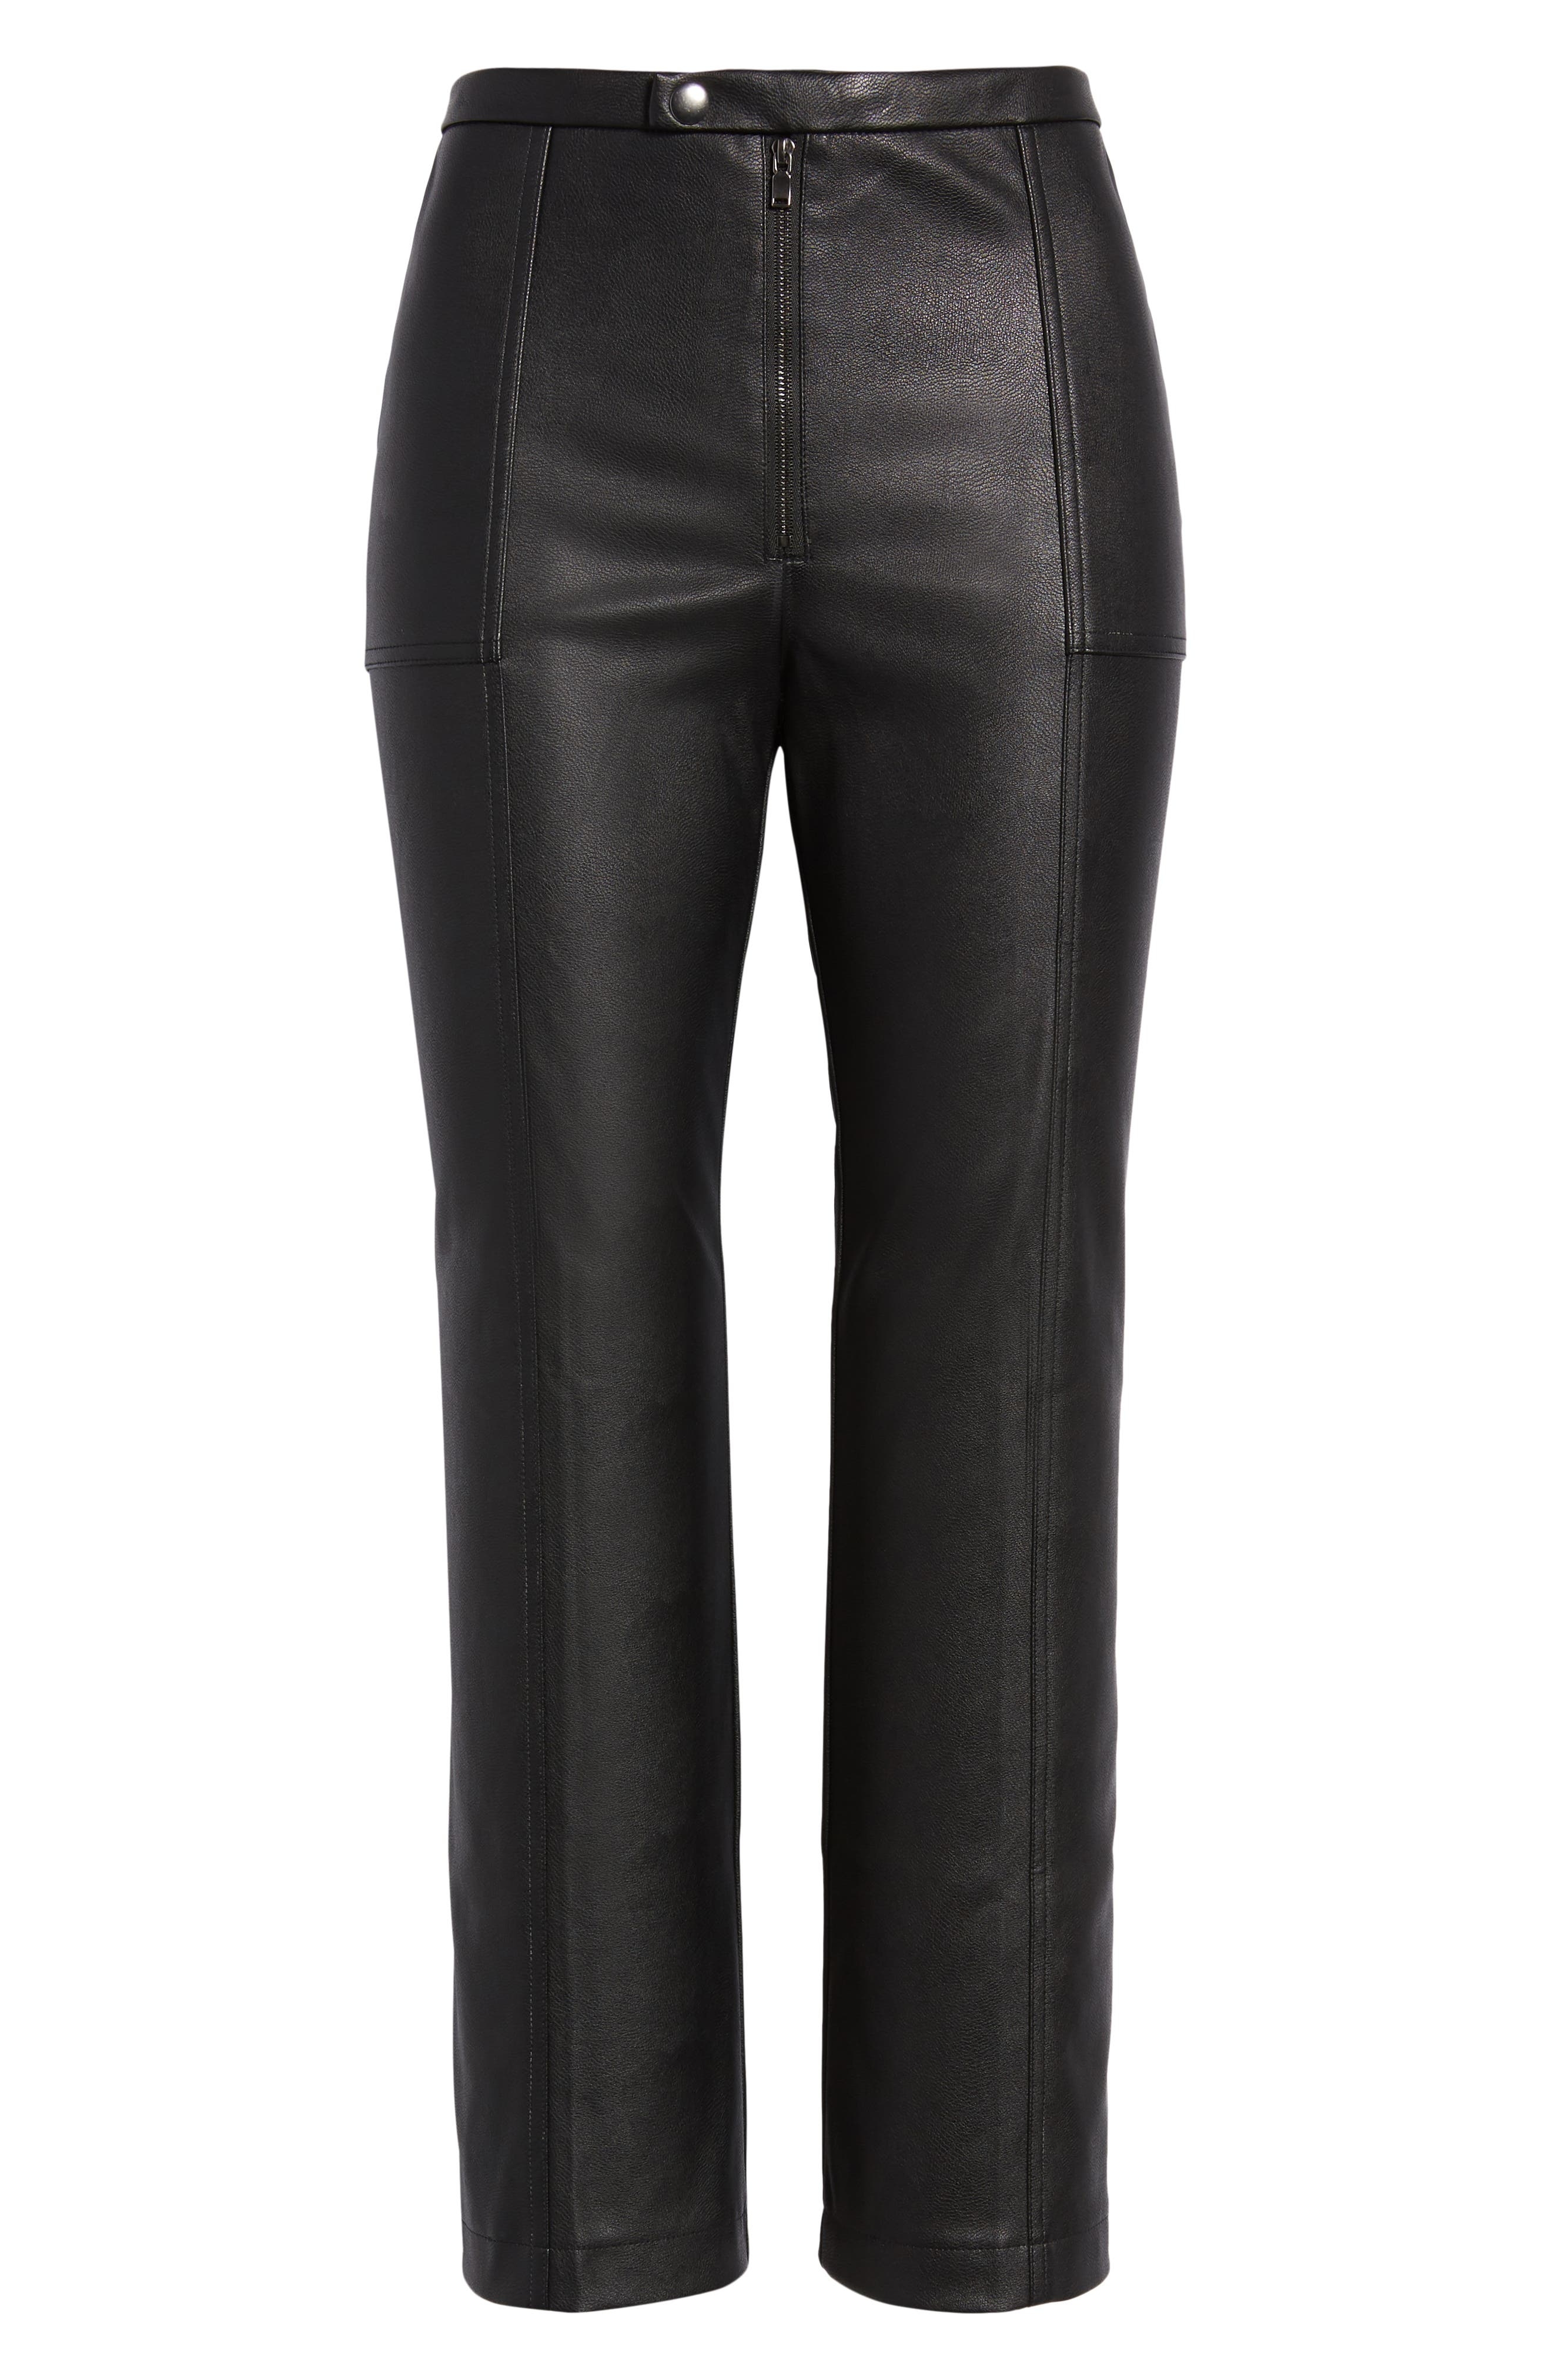 DAVID LERNER, Pintuck Flare Faux Leather Trousers, Alternate thumbnail 7, color, 001